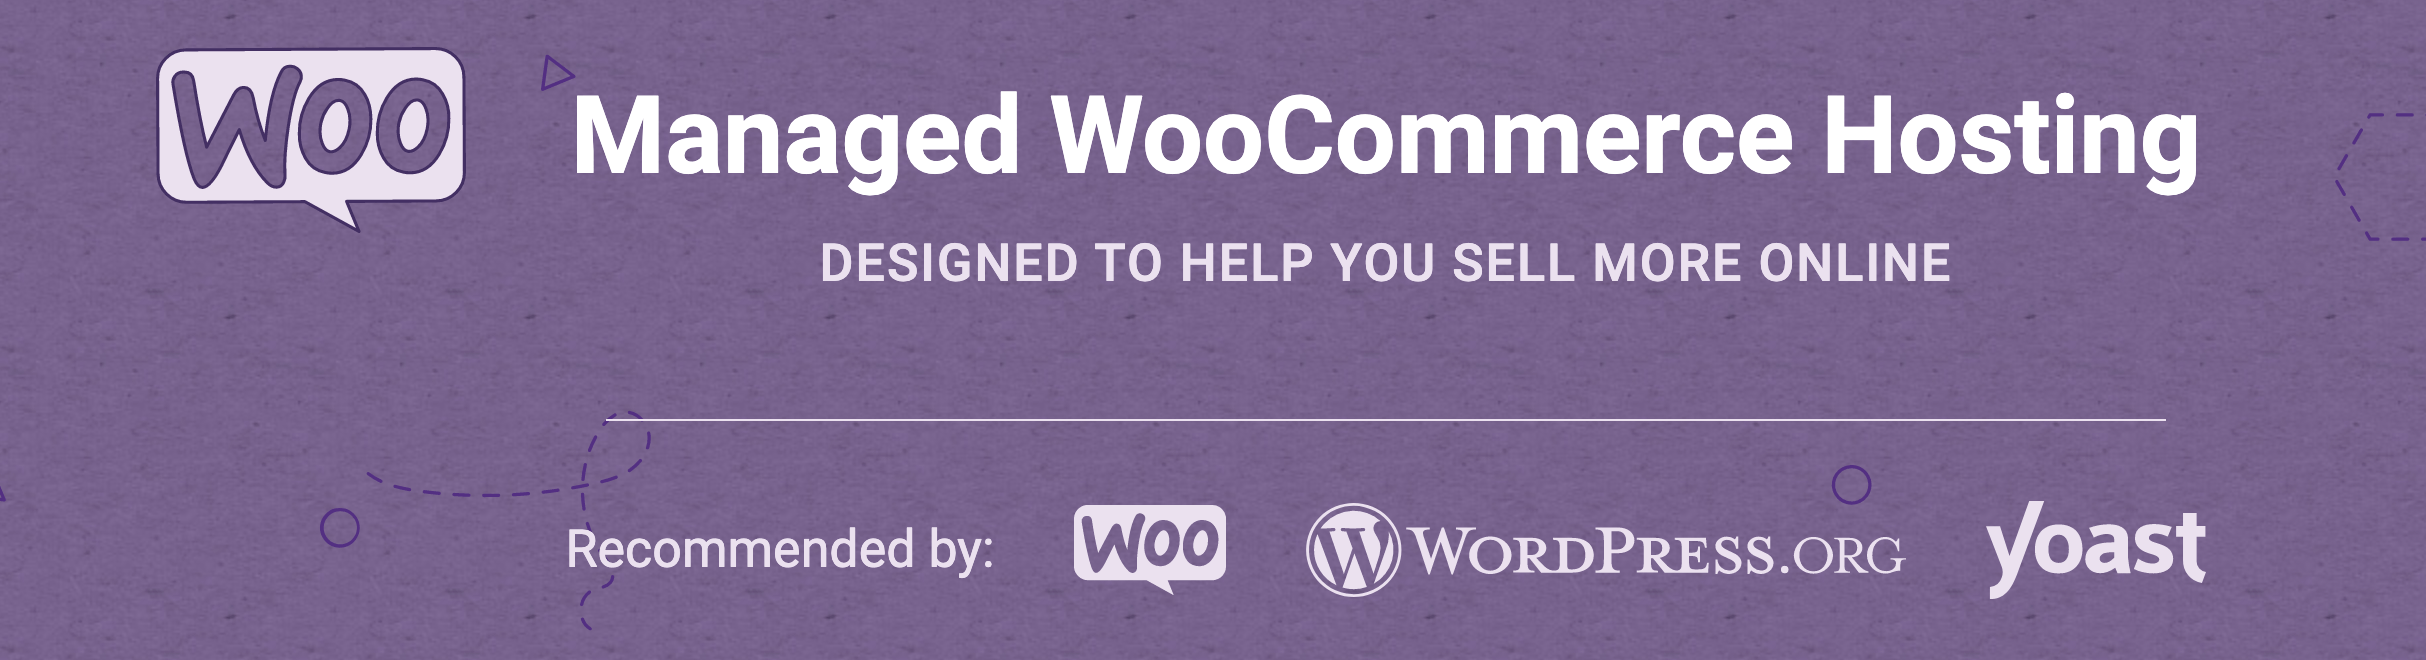 SiteGround's WooCommerce hosting.